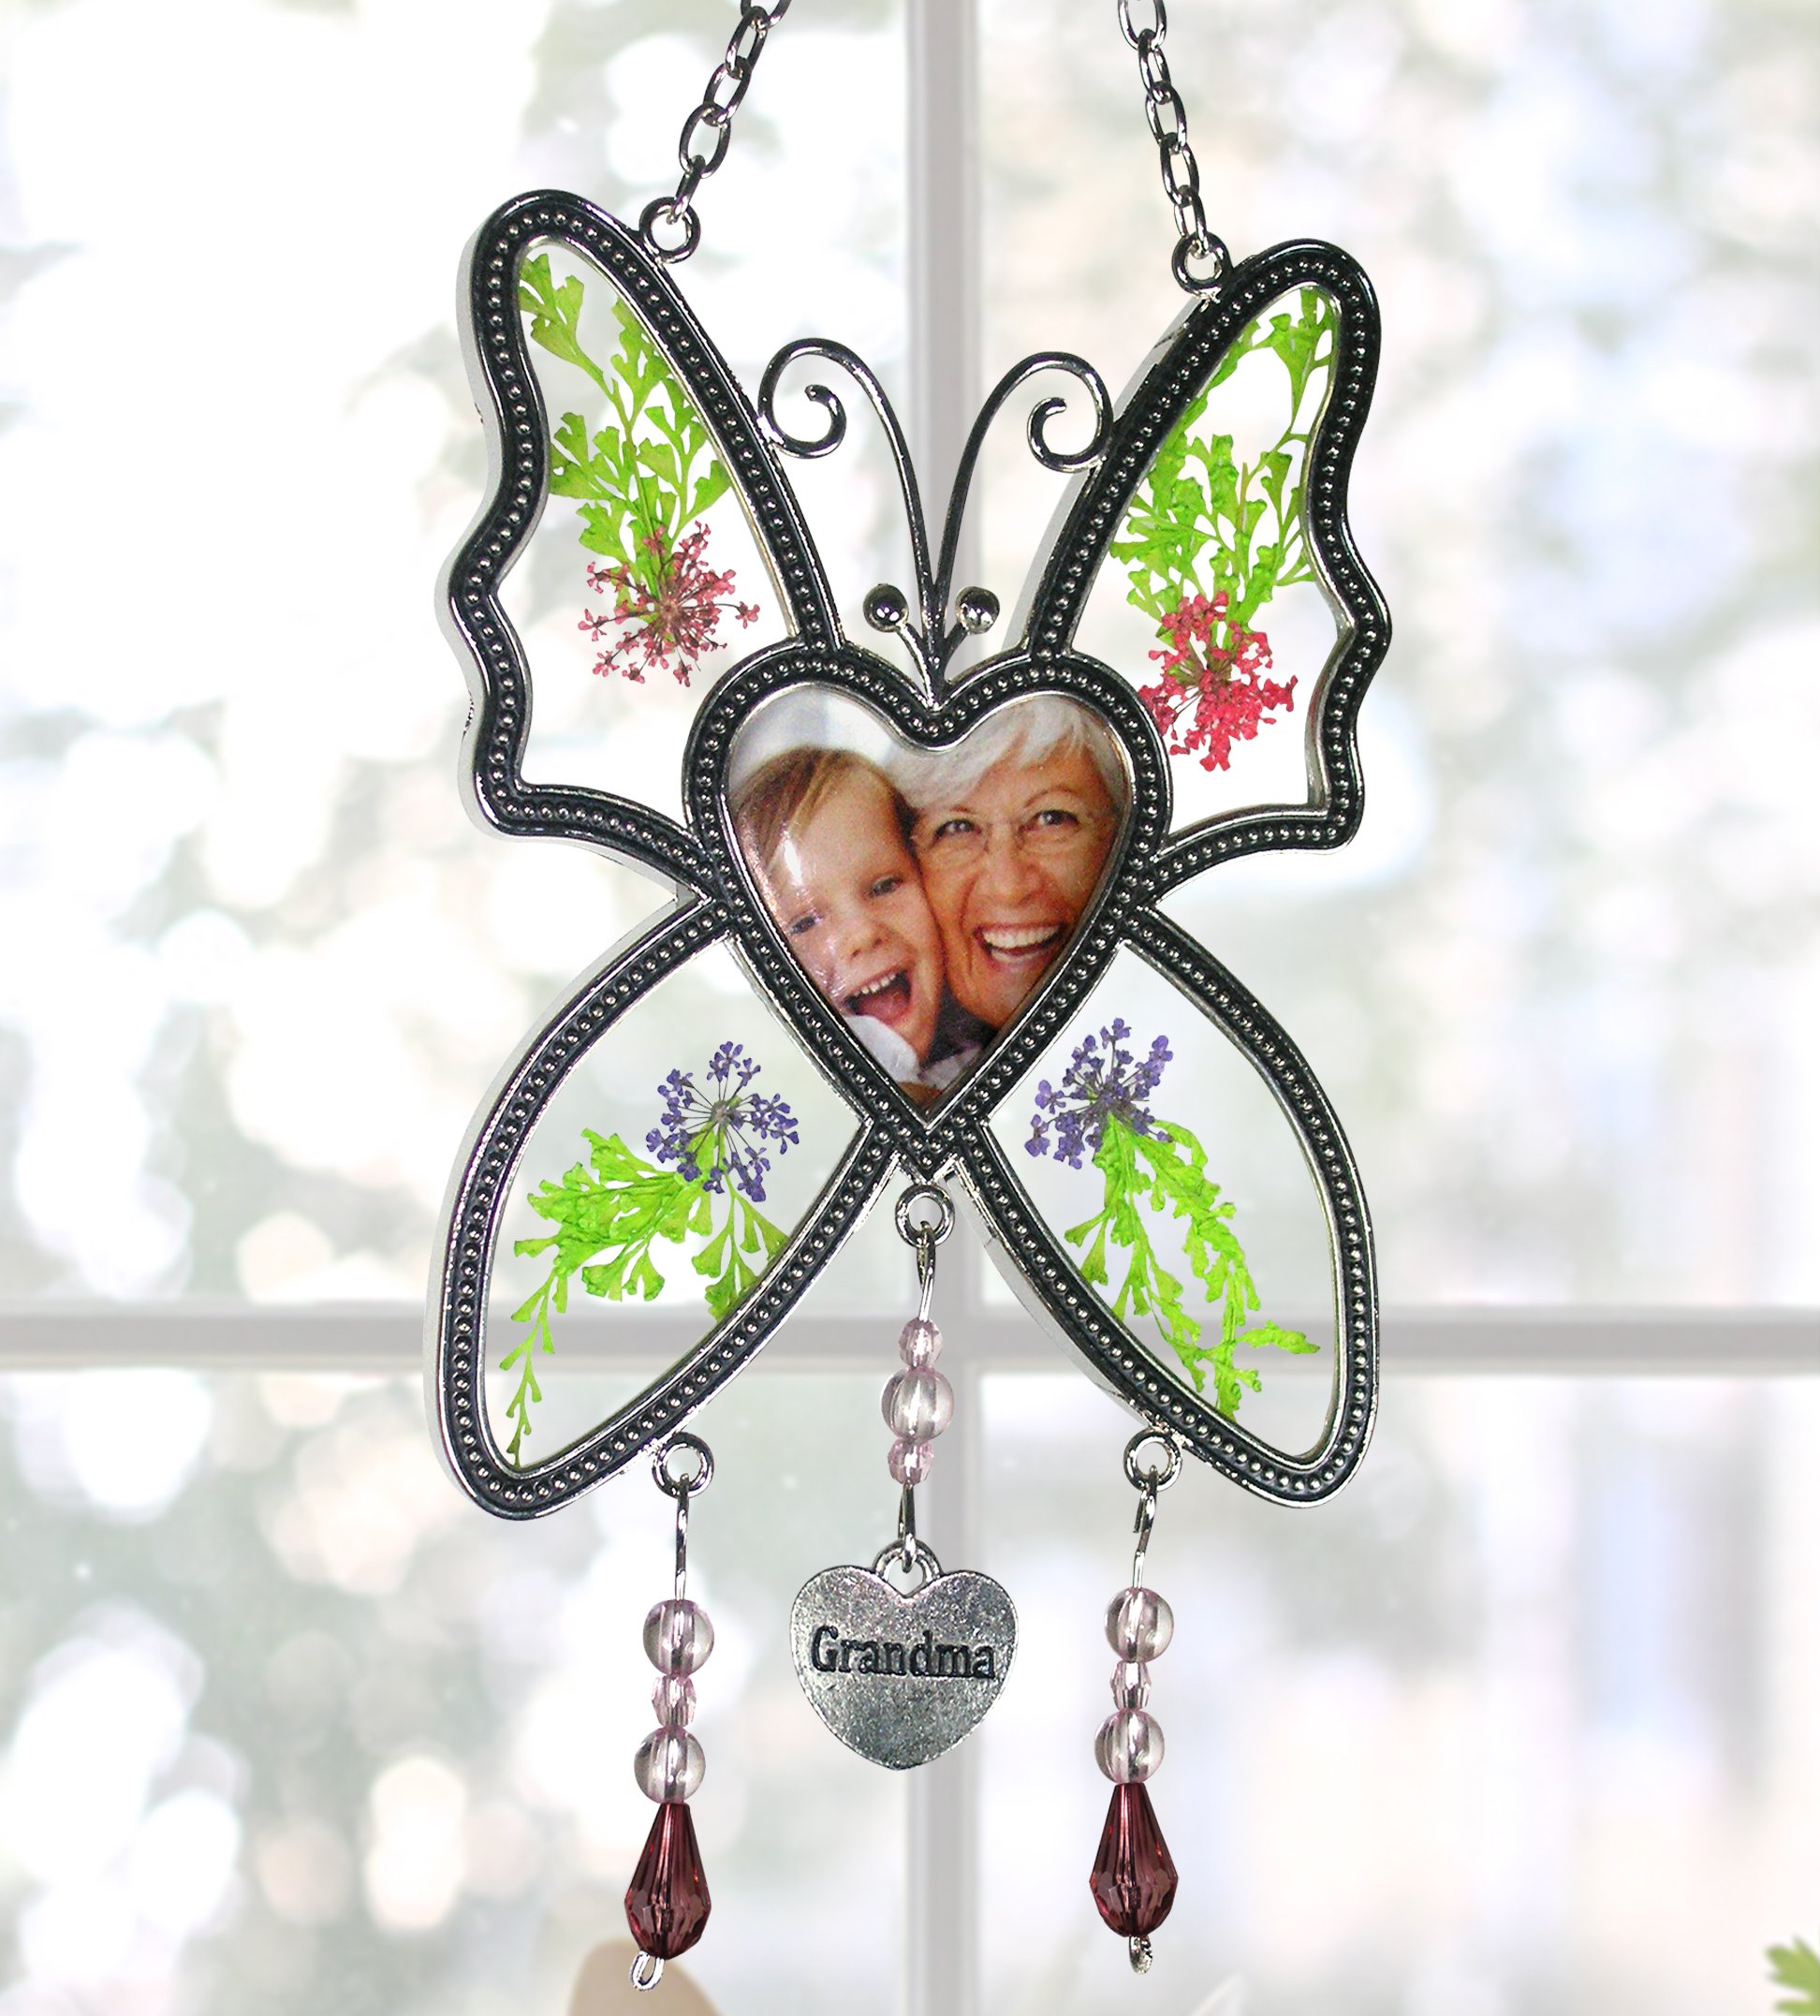 BANBERRY DESIGNS Grandma Photo Butterfly Suncatcher - Pressed Flowers with a Heart Shaped Picture Opening